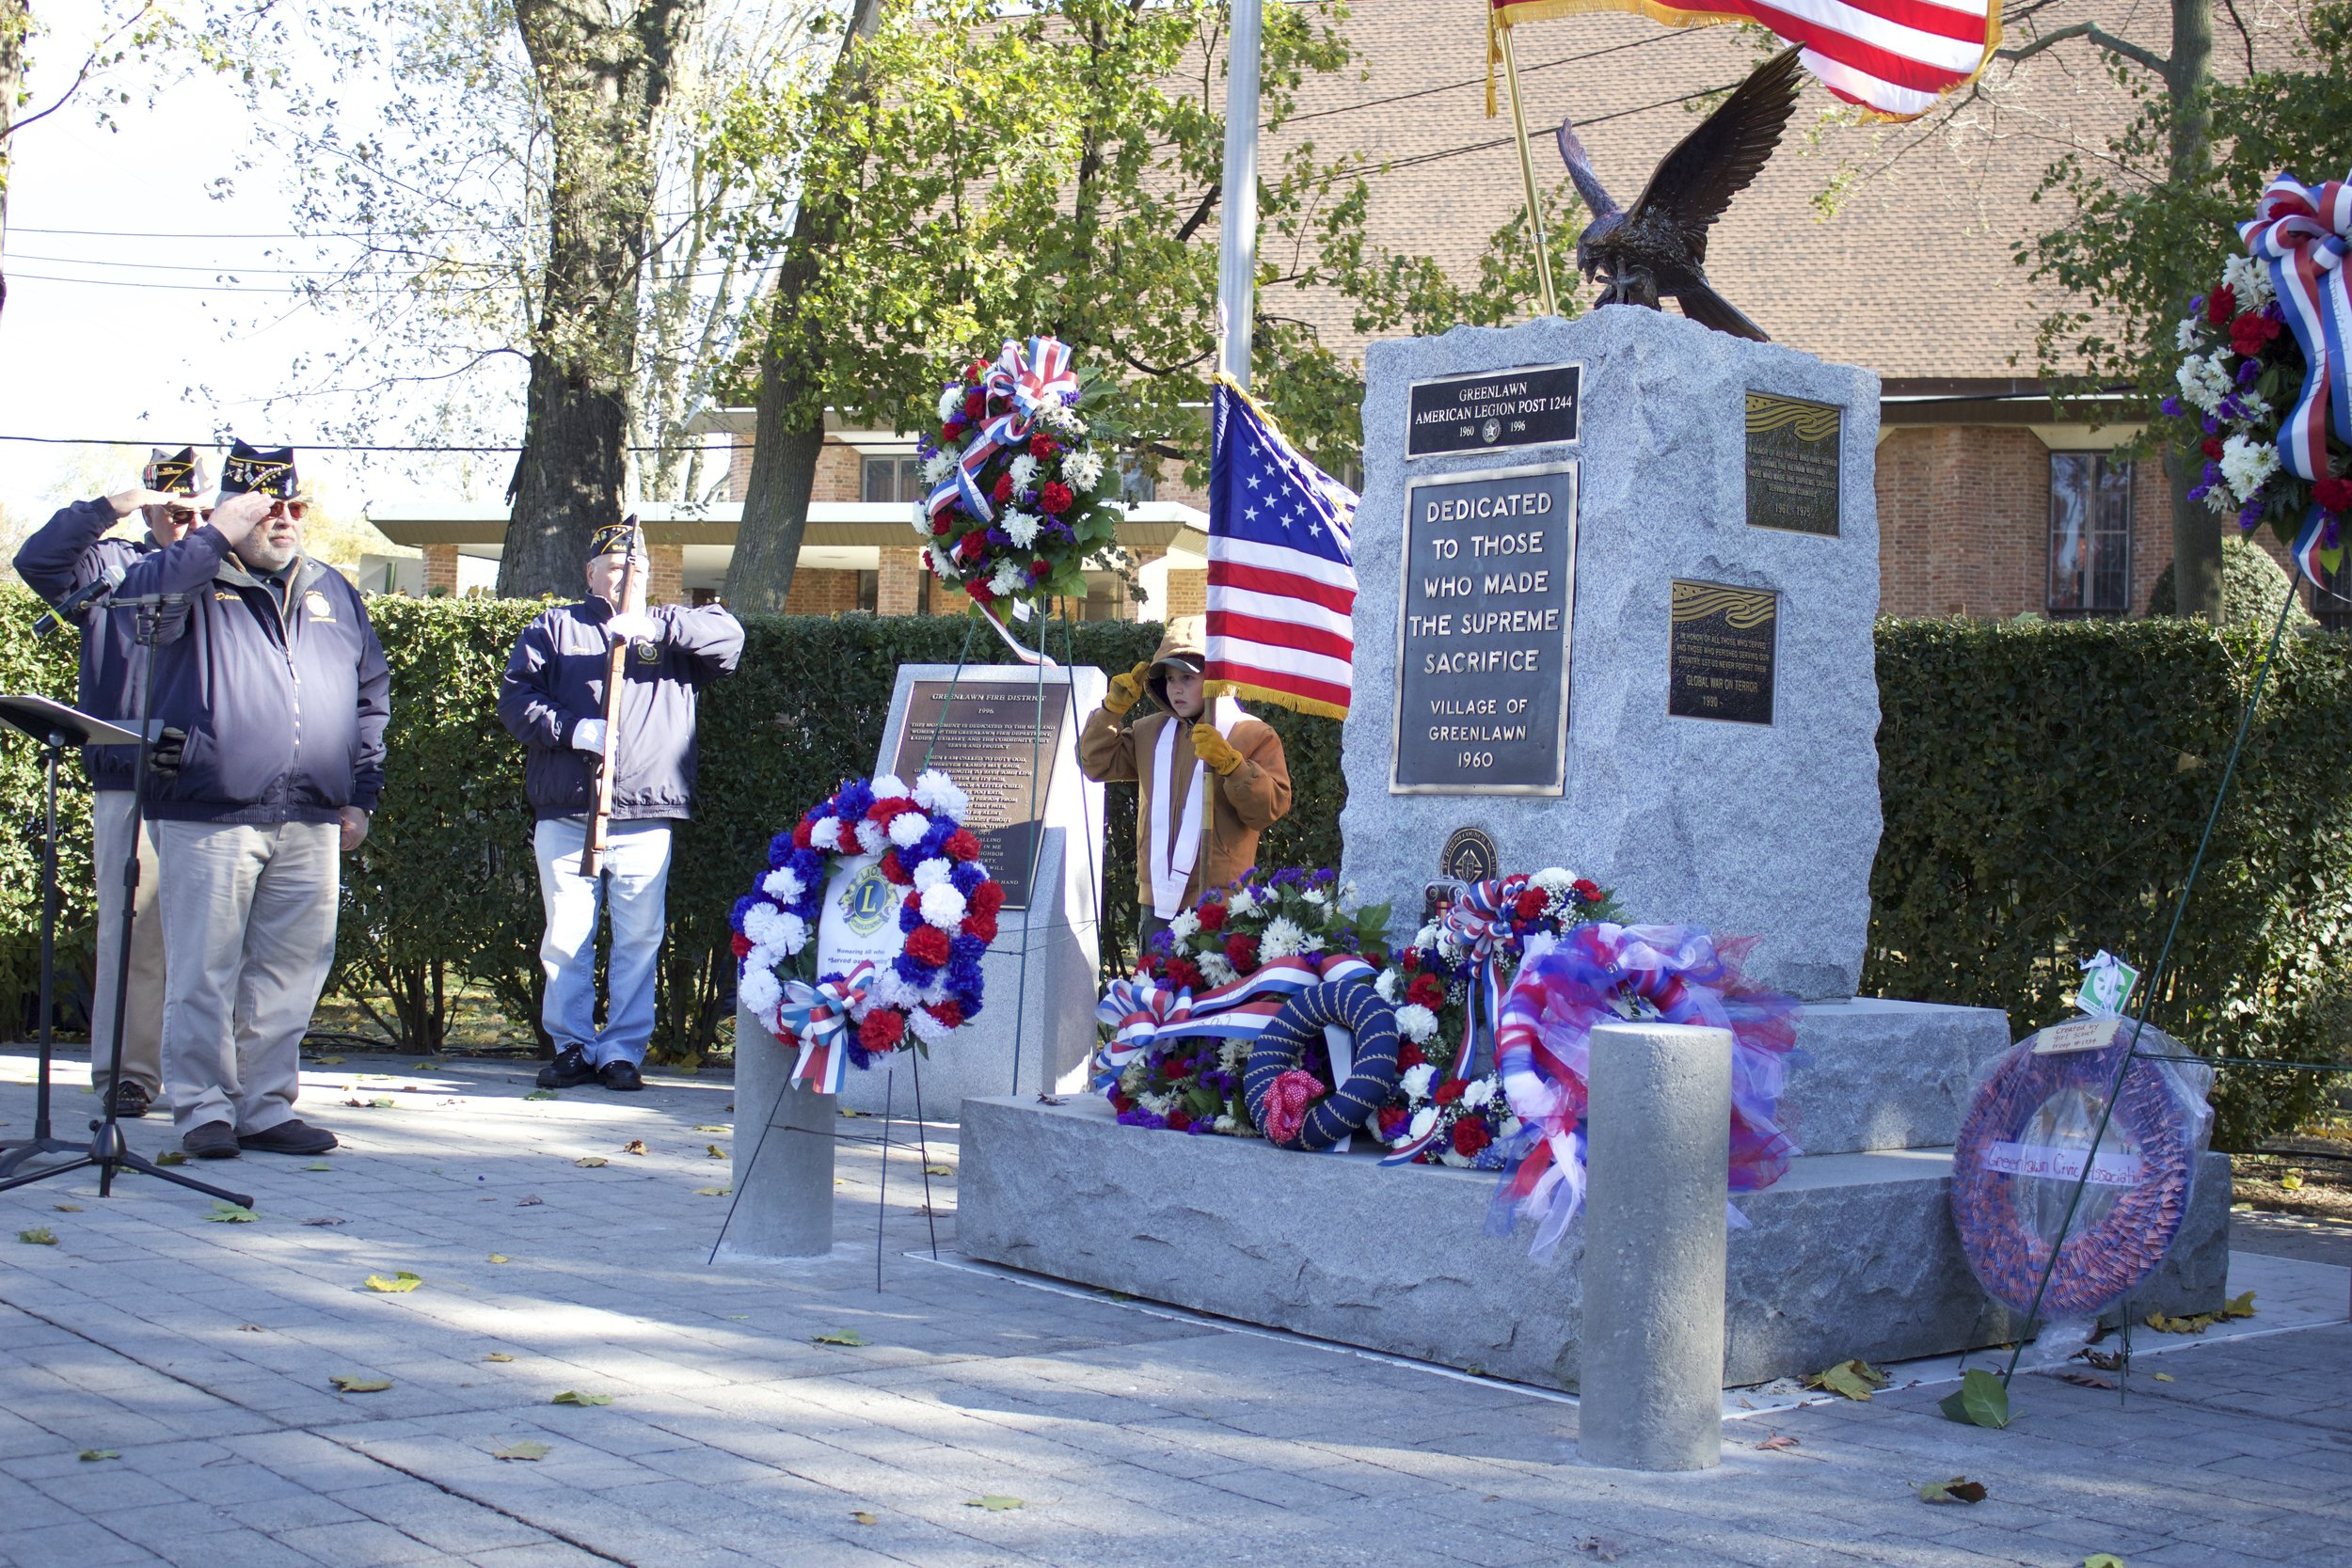 The monument at Greenlawn Memorial Park was adorned with wreaths for the annual Veterans Day Ceremony in memory of the men and women from all conflicts who lost their lives.   Long Islander News Photo/Janee Law